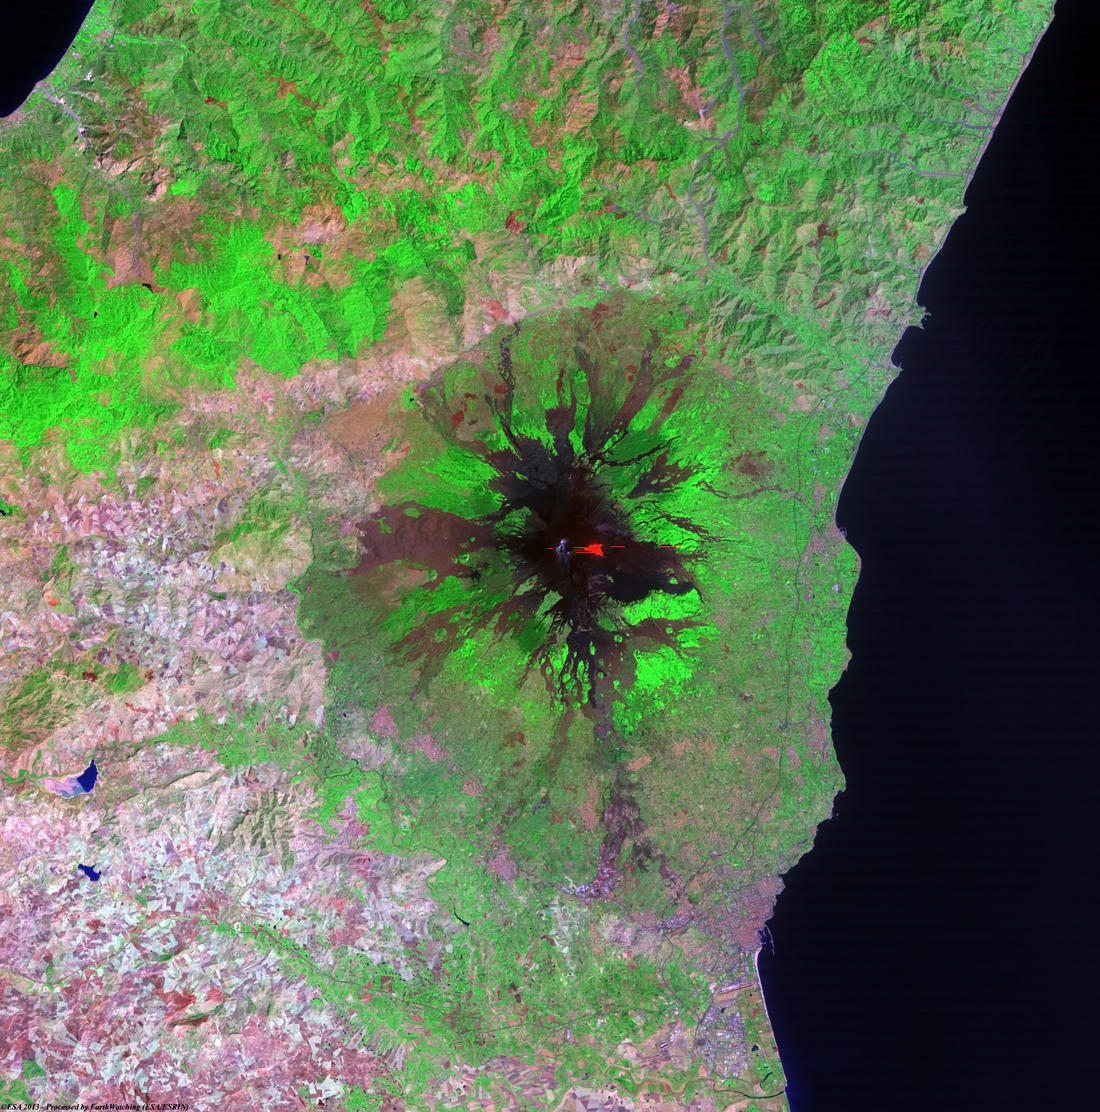 Etna_Volcano_Landsat5_Date10sep08_Bands742preview